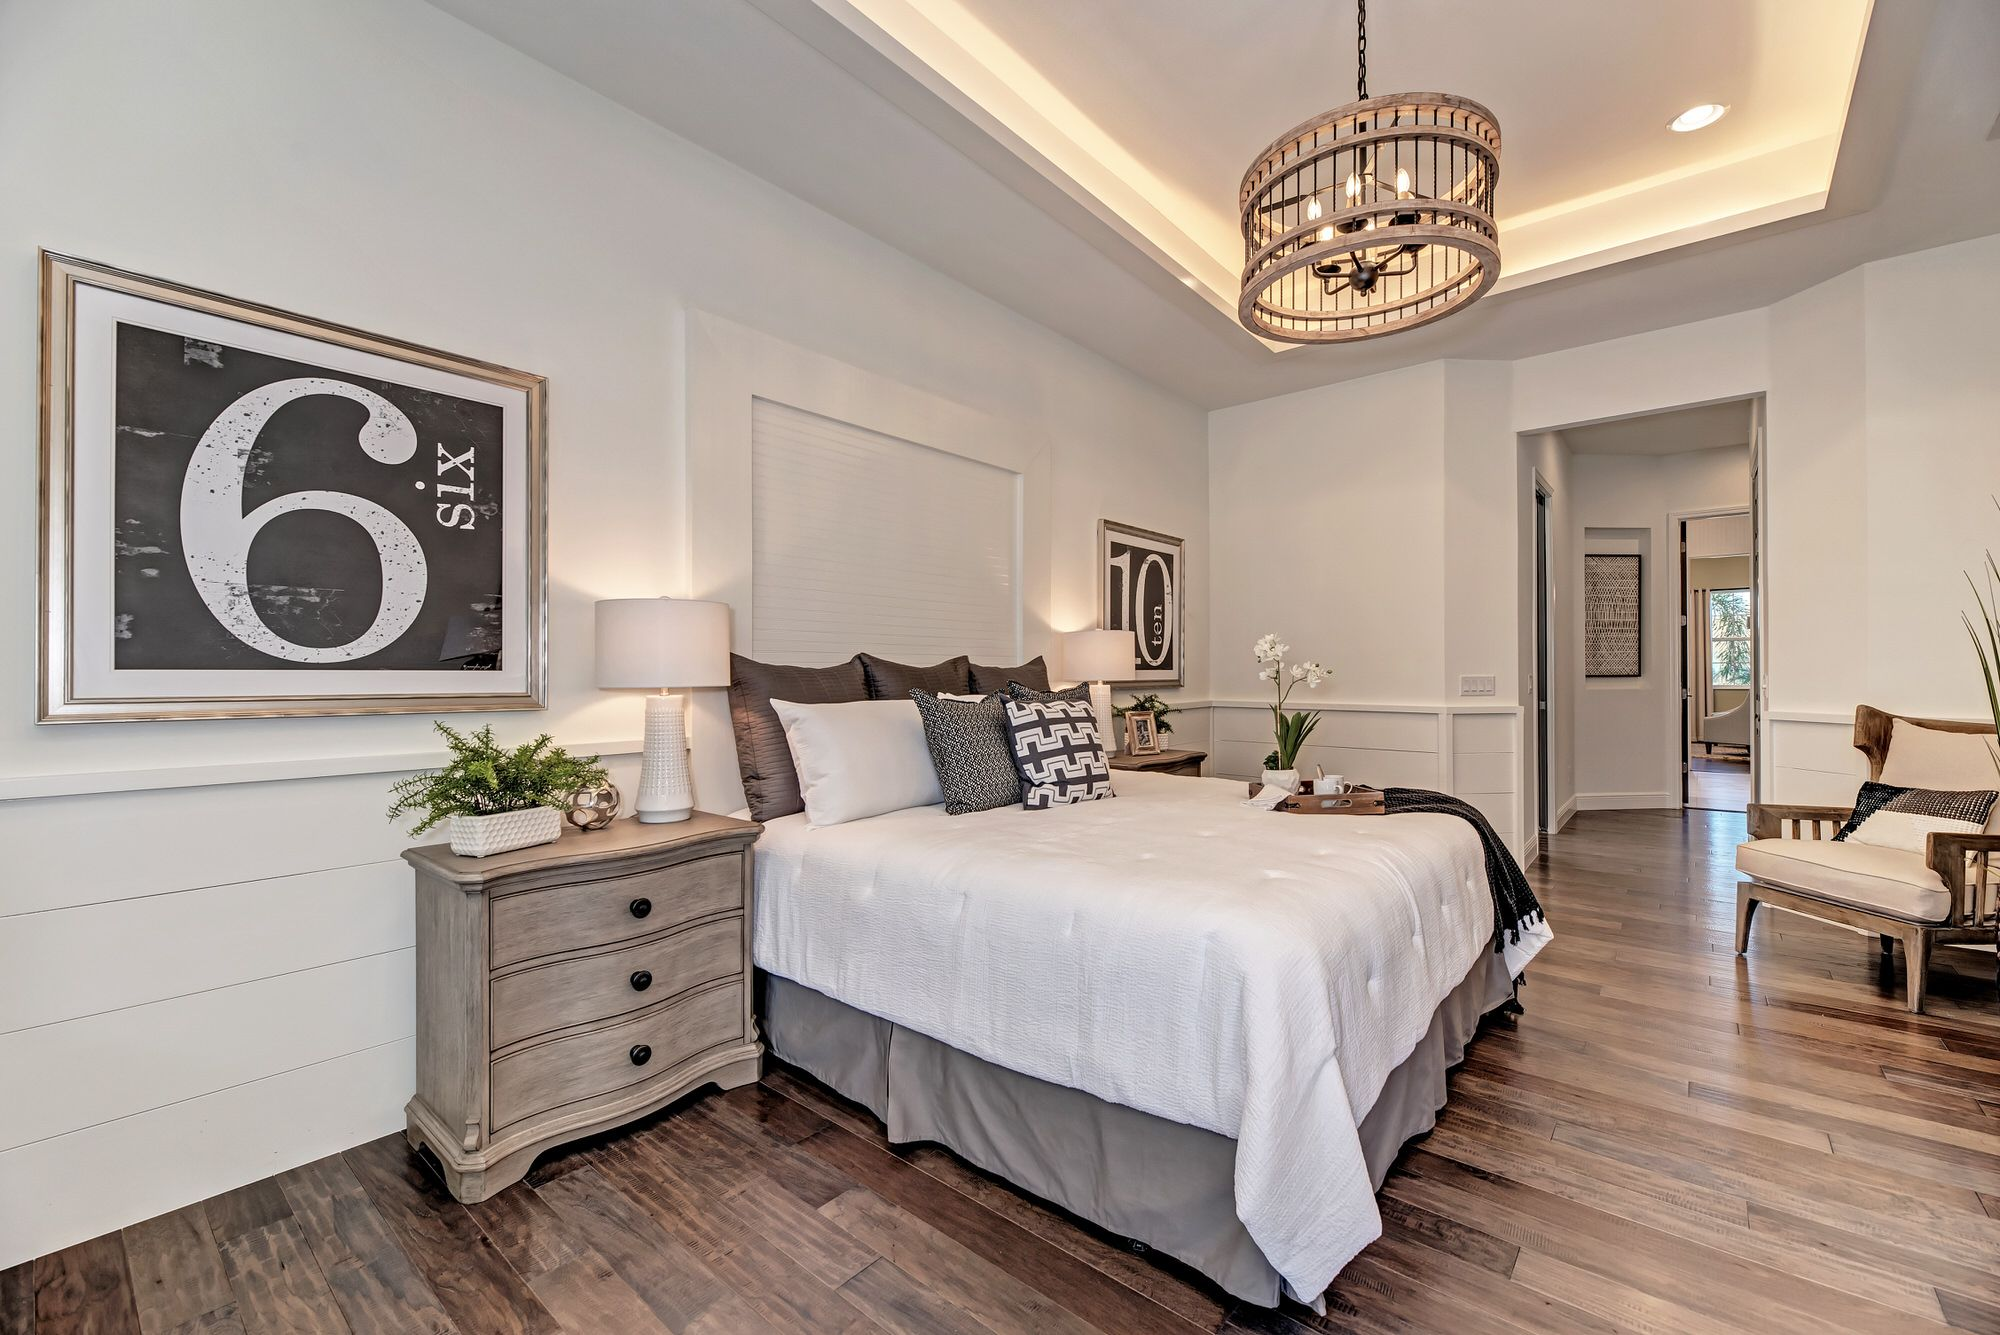 Bedroom featured in the Aruba-The Reserve By Medallion Home in Sarasota-Bradenton, FL